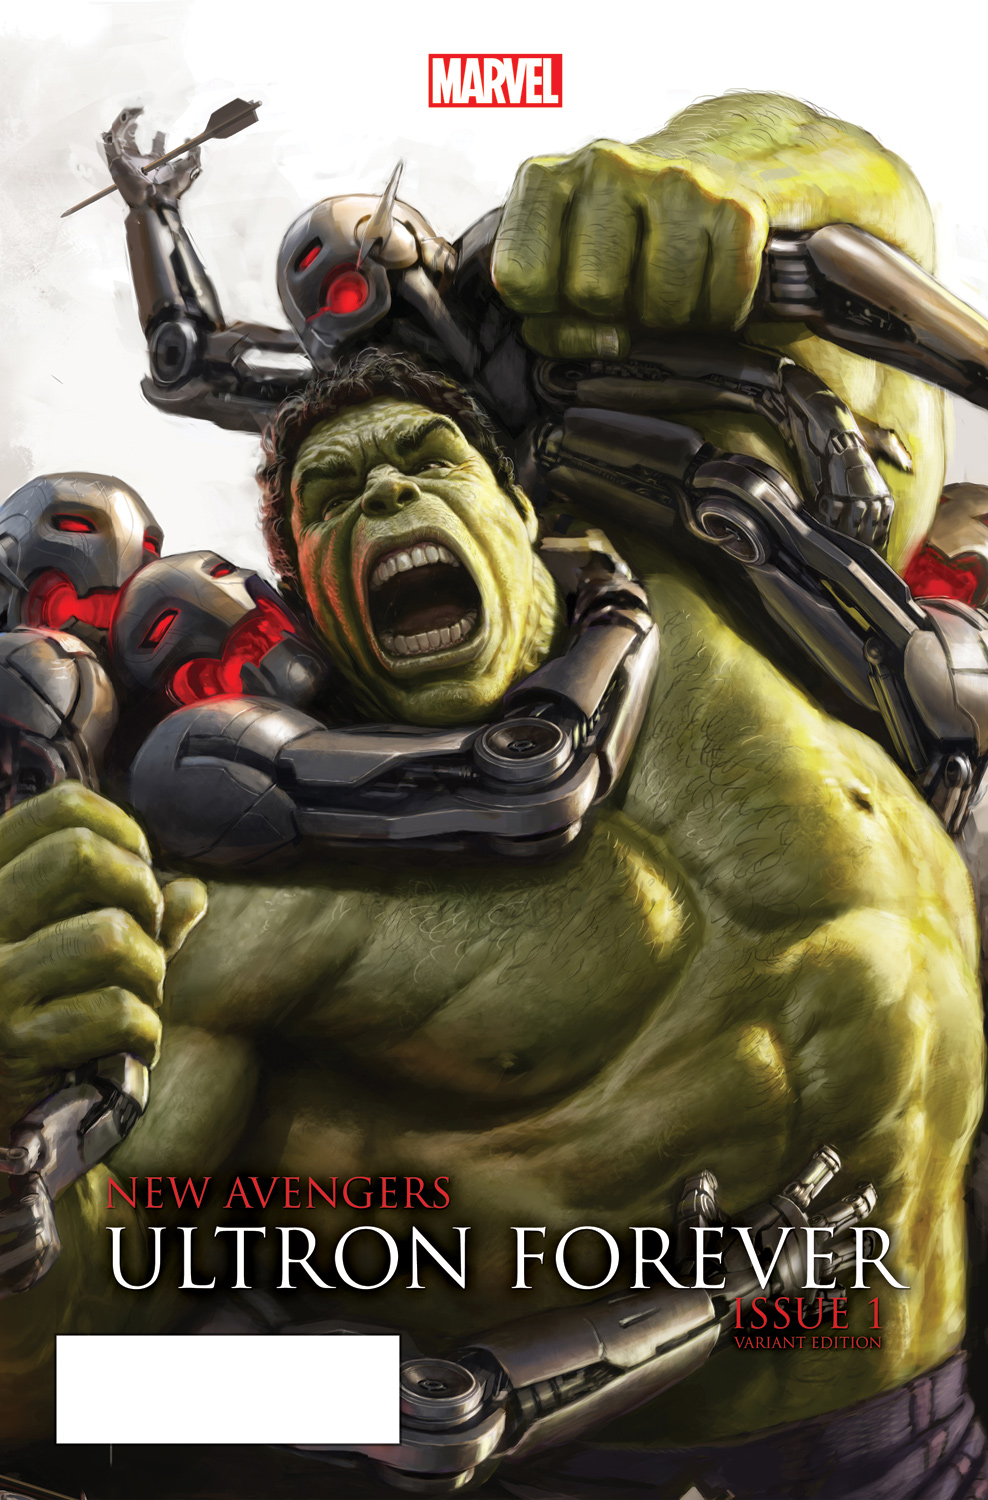 New_Avengers_Ultron_Forever_1_AU_Movie_Connecting_Variant_A AVENGERS: AGE OF ULTRON Movie Variants arrive this April